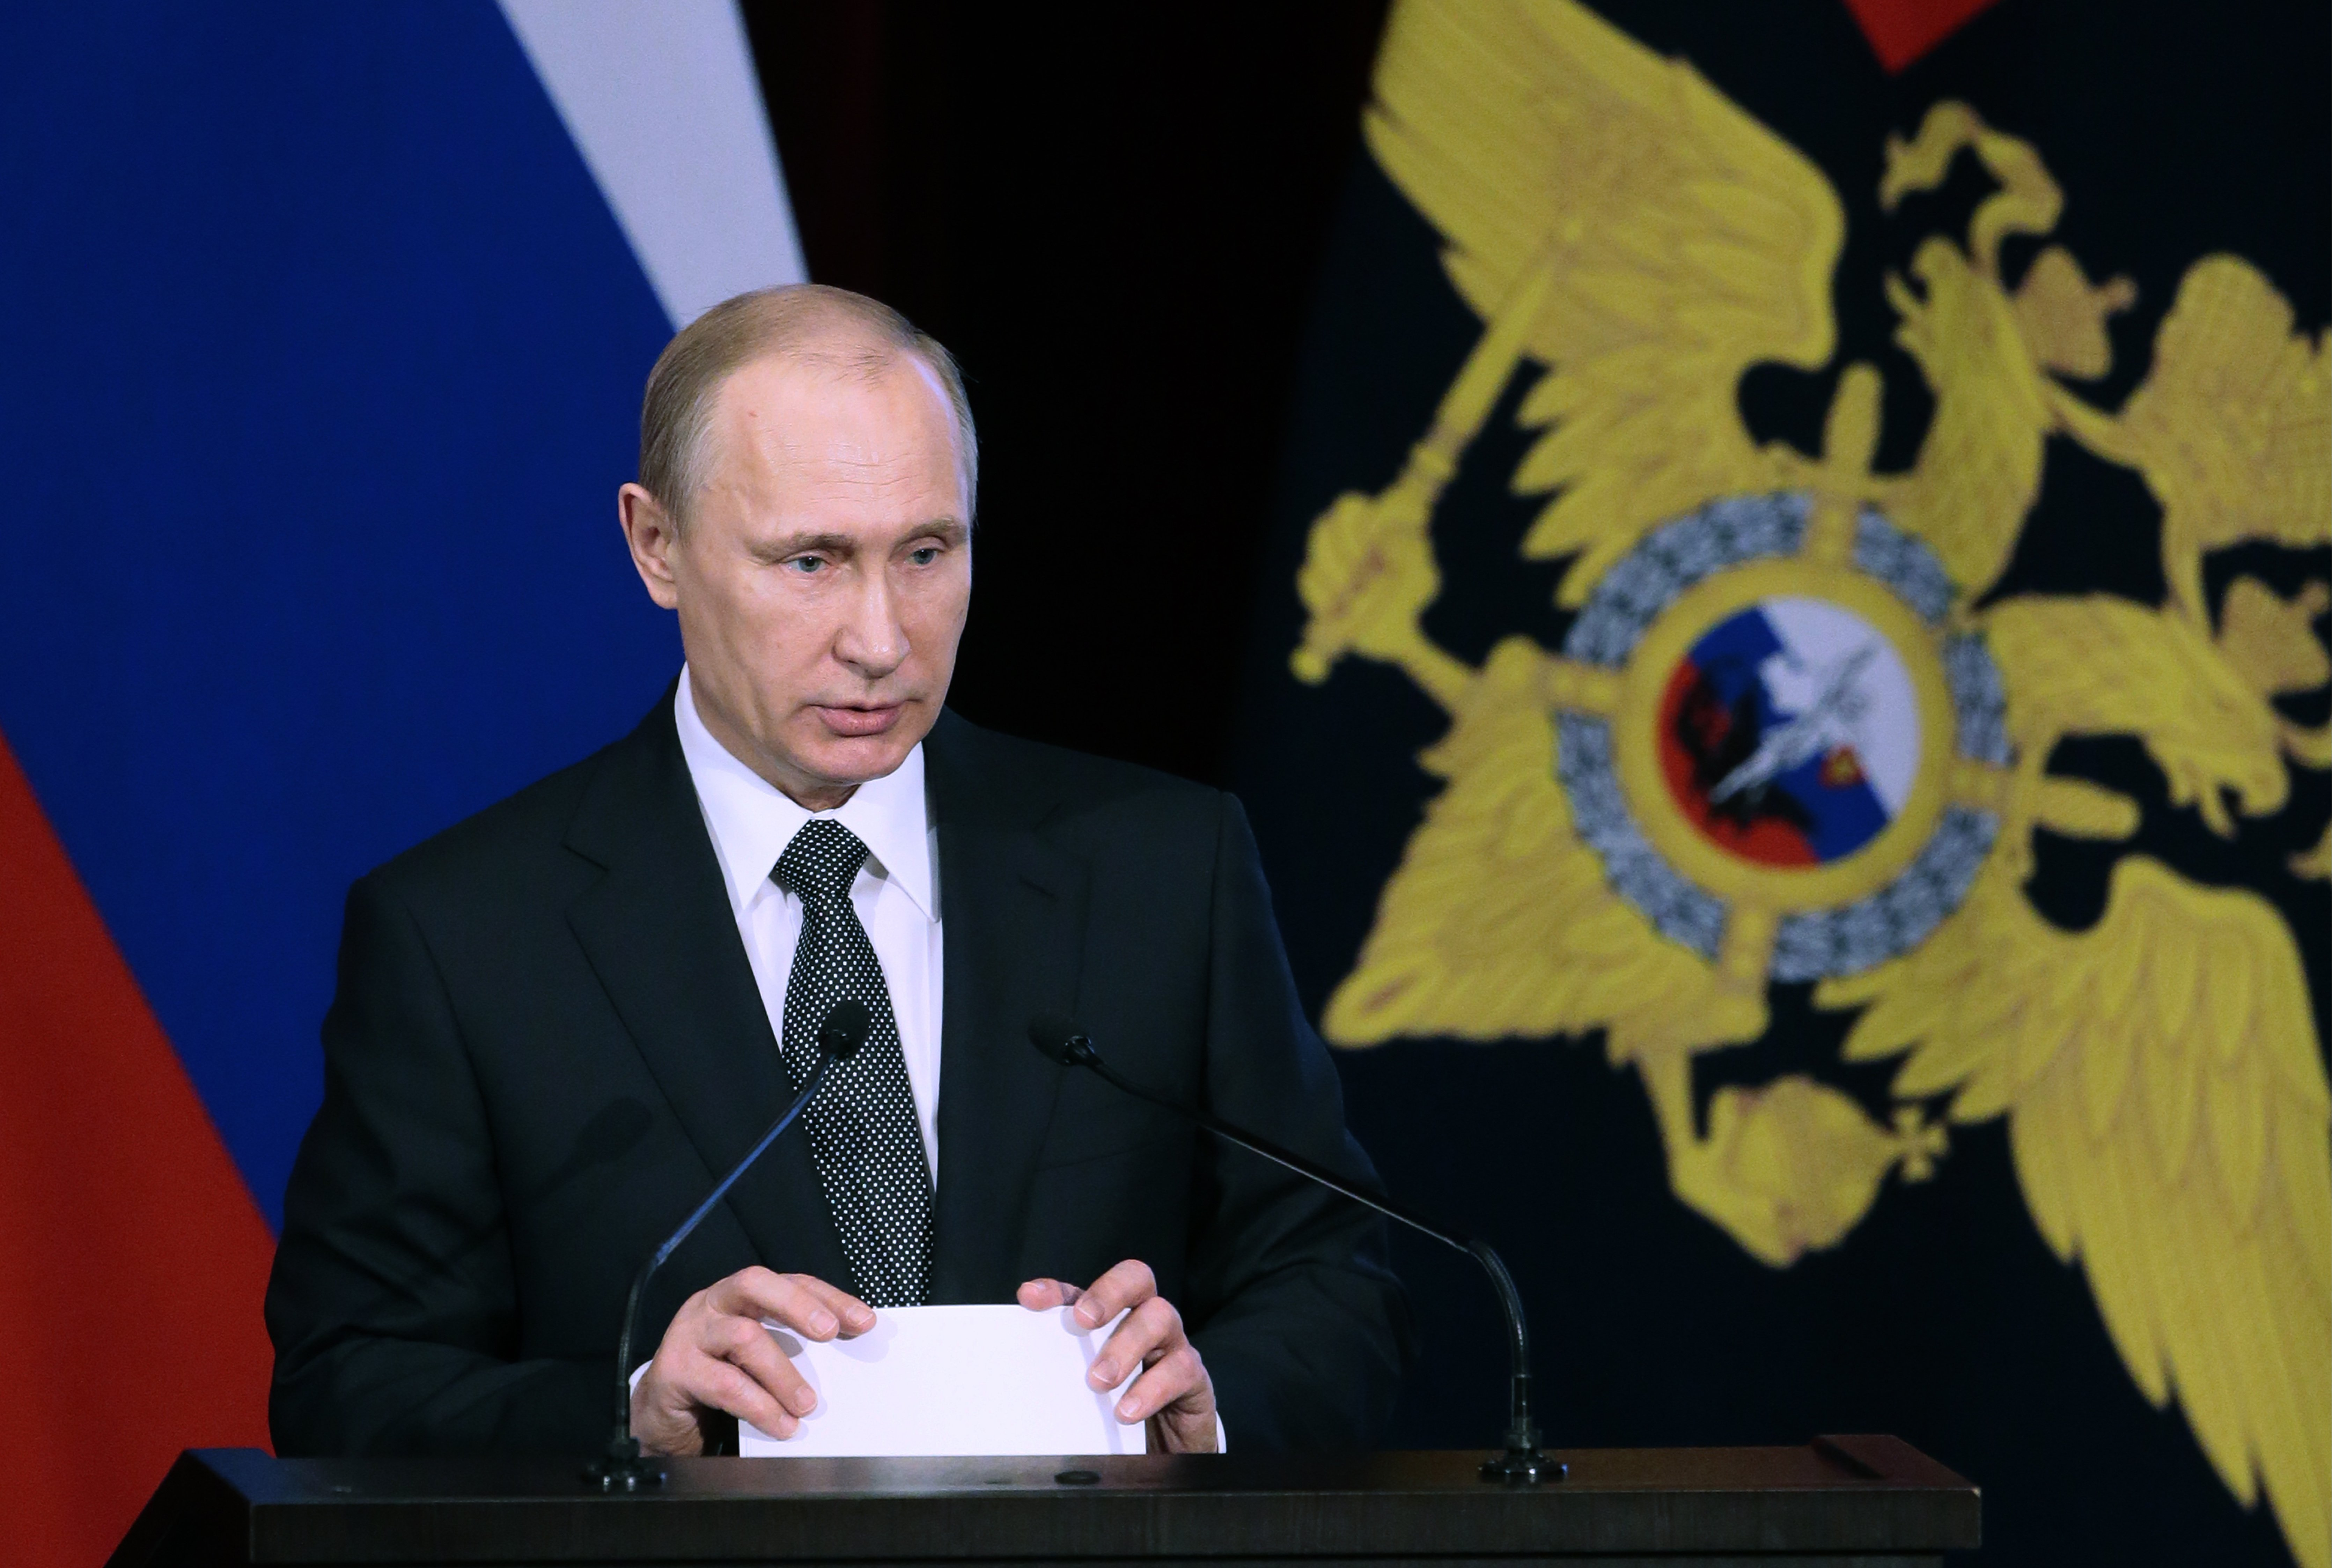 Russian president Vladimir Putin addresses a meeting of the Russian Interior Ministry's Collegium on March4, 2015 in Moscow.